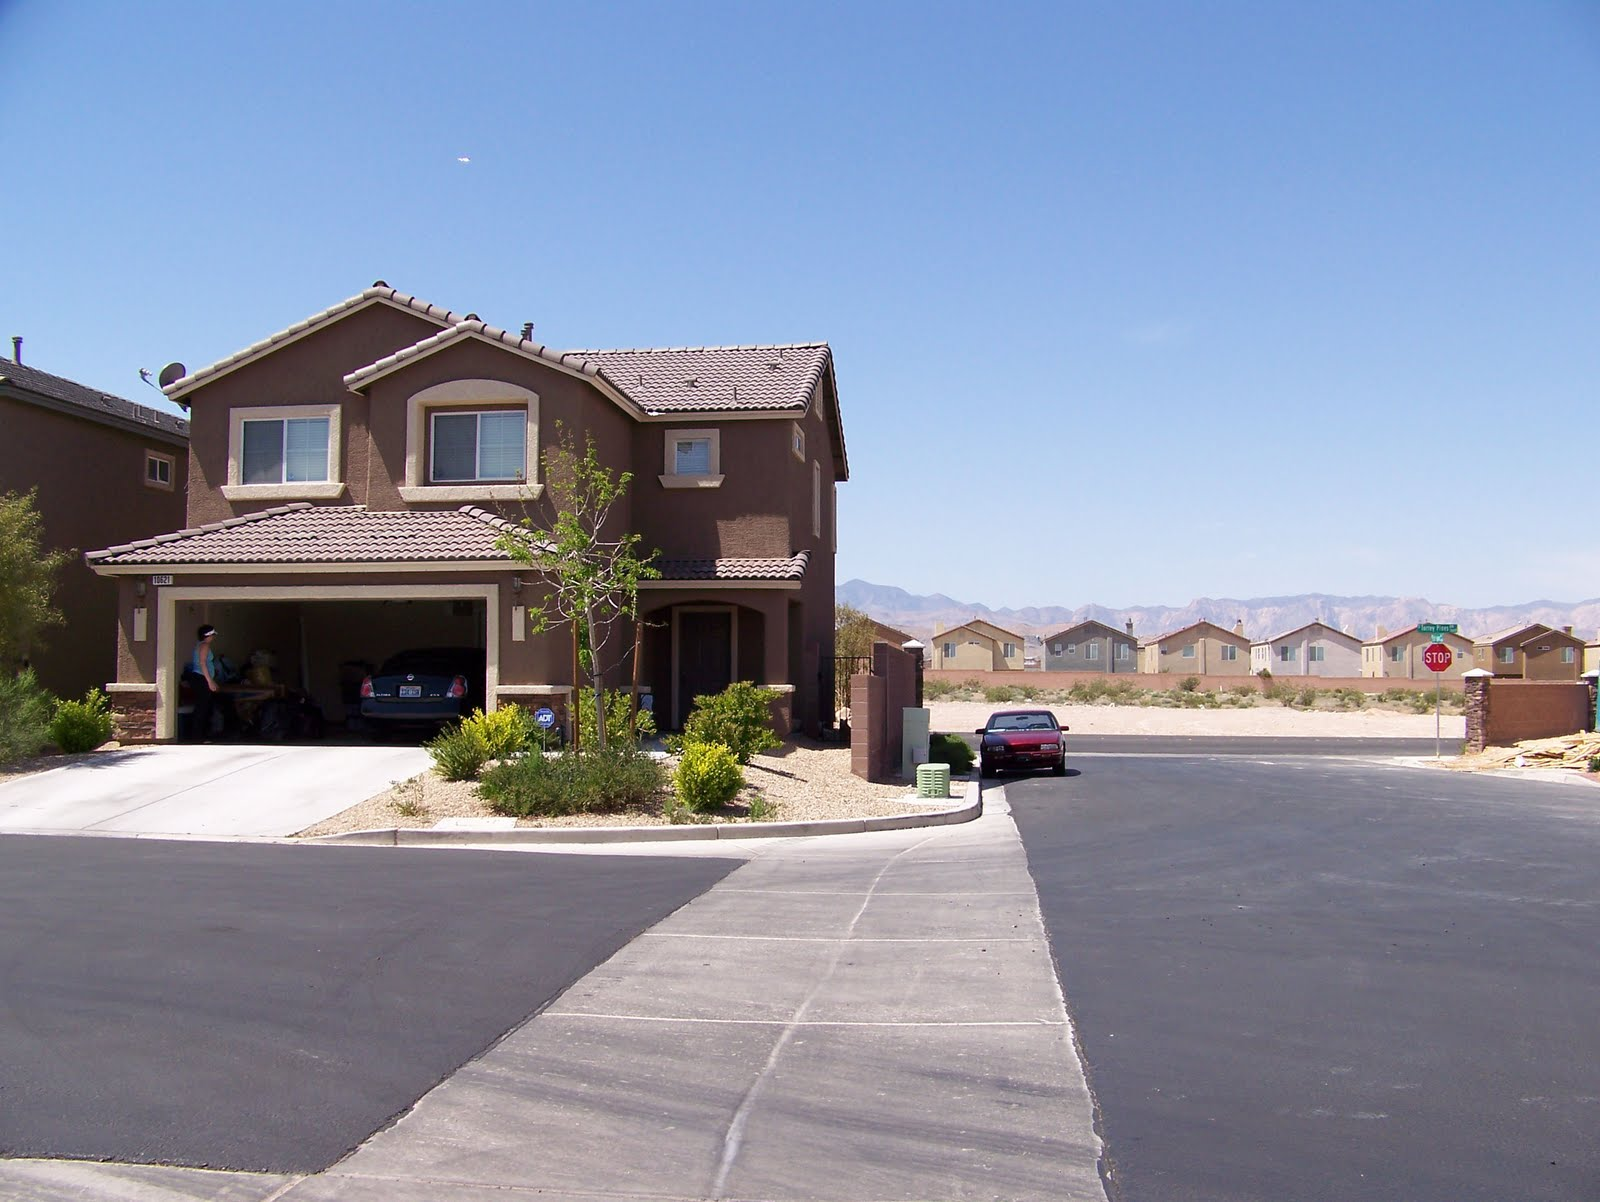 A Couple Of Weeks Ago I Traveled To Las Vegas To Visit My Daughter. She Had  Bought A Beautiful Home In Las Vegas That Had A Very Nice Yard Already.